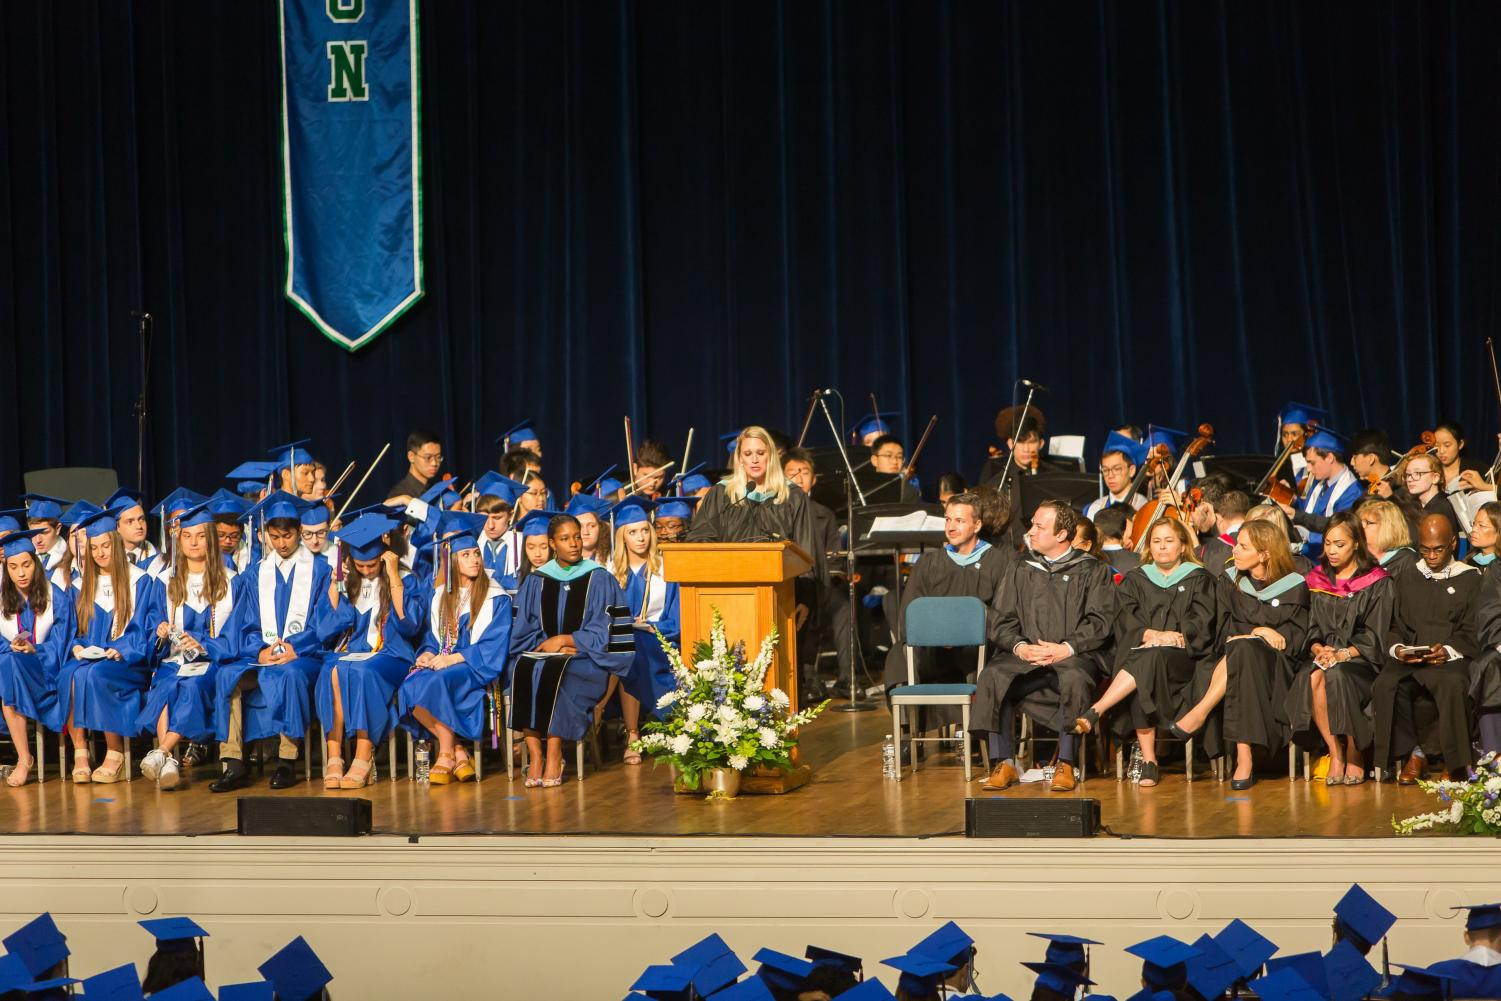 WCHS Principal Brandice Heckert addressing the WCHS Class of 2019 during their .graduation ceremony.